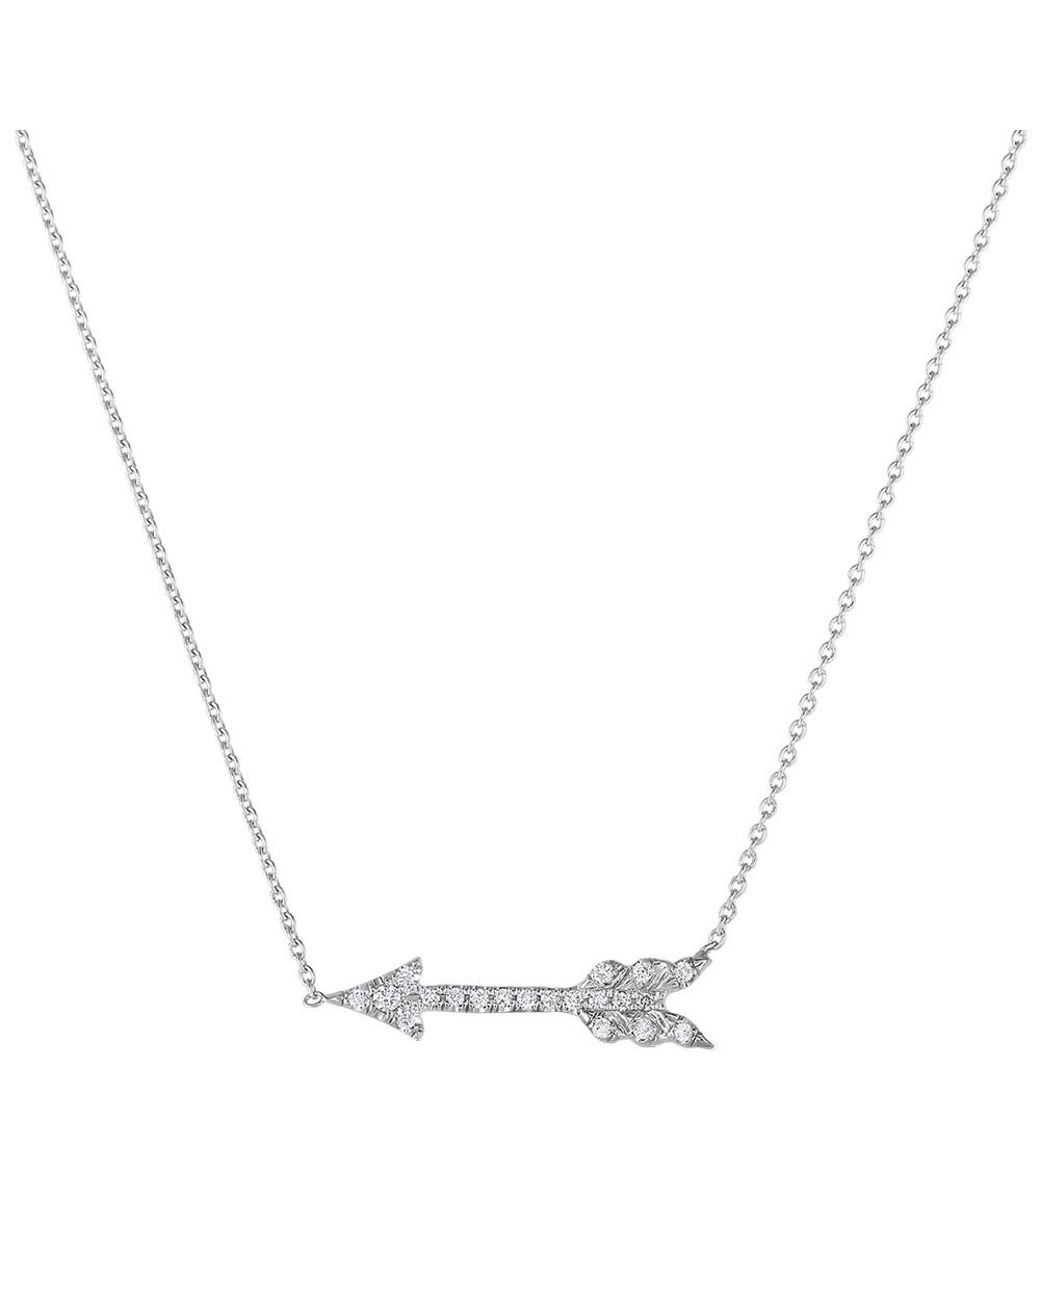 Roberto Coin 18K White Gold .09cts  Diamonds Gold Necklace with Stones 000046AWCHX0